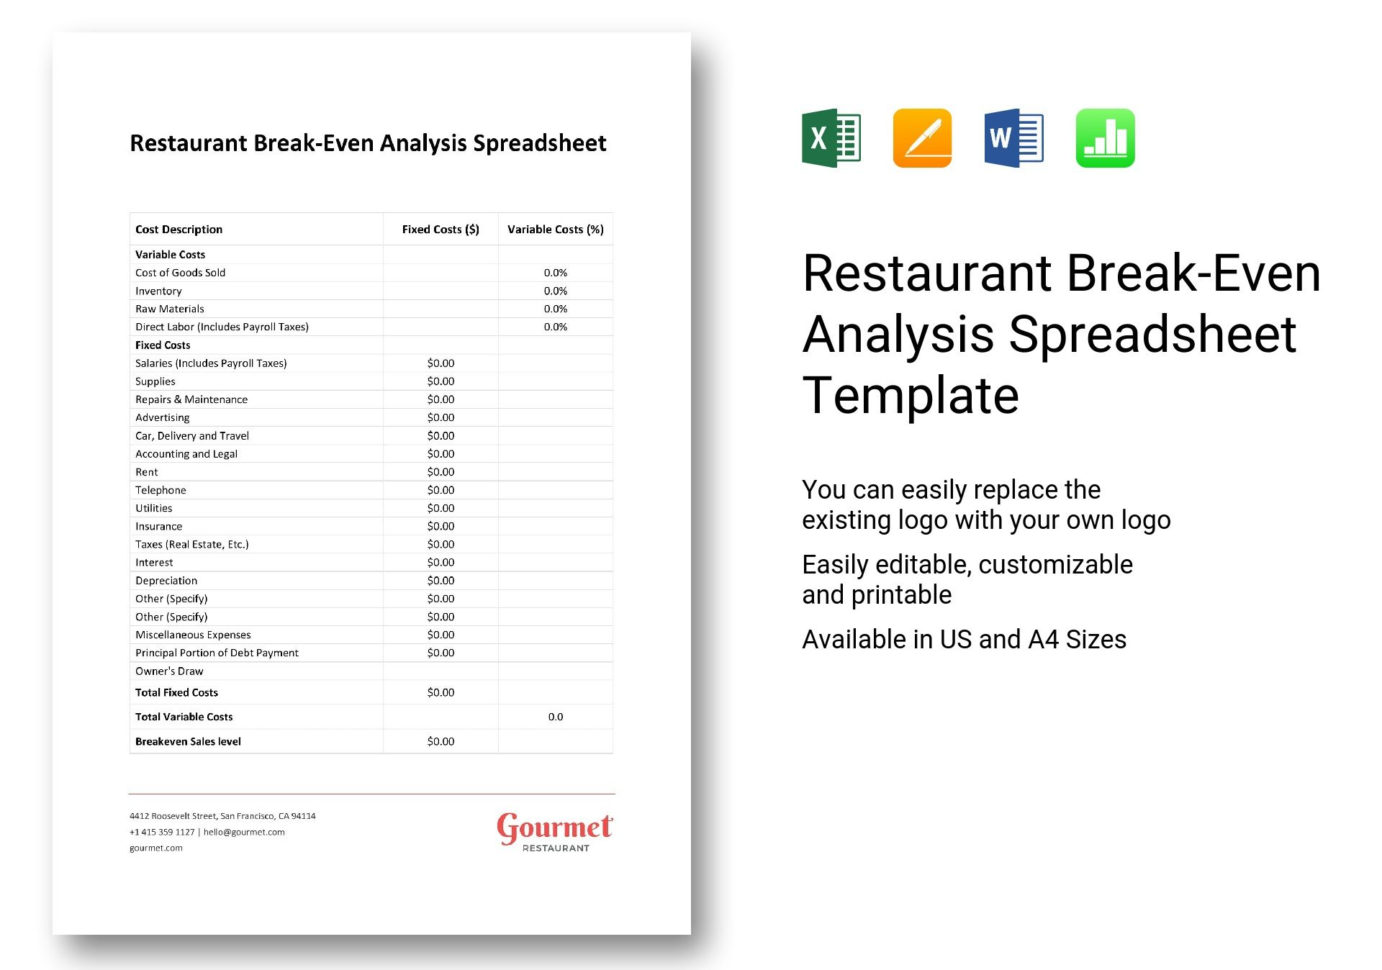 Restaurant Cost Analysis Spreadsheet Intended For Restaurant Breakeven Analysis Spreadsheet Template In Word, Excel